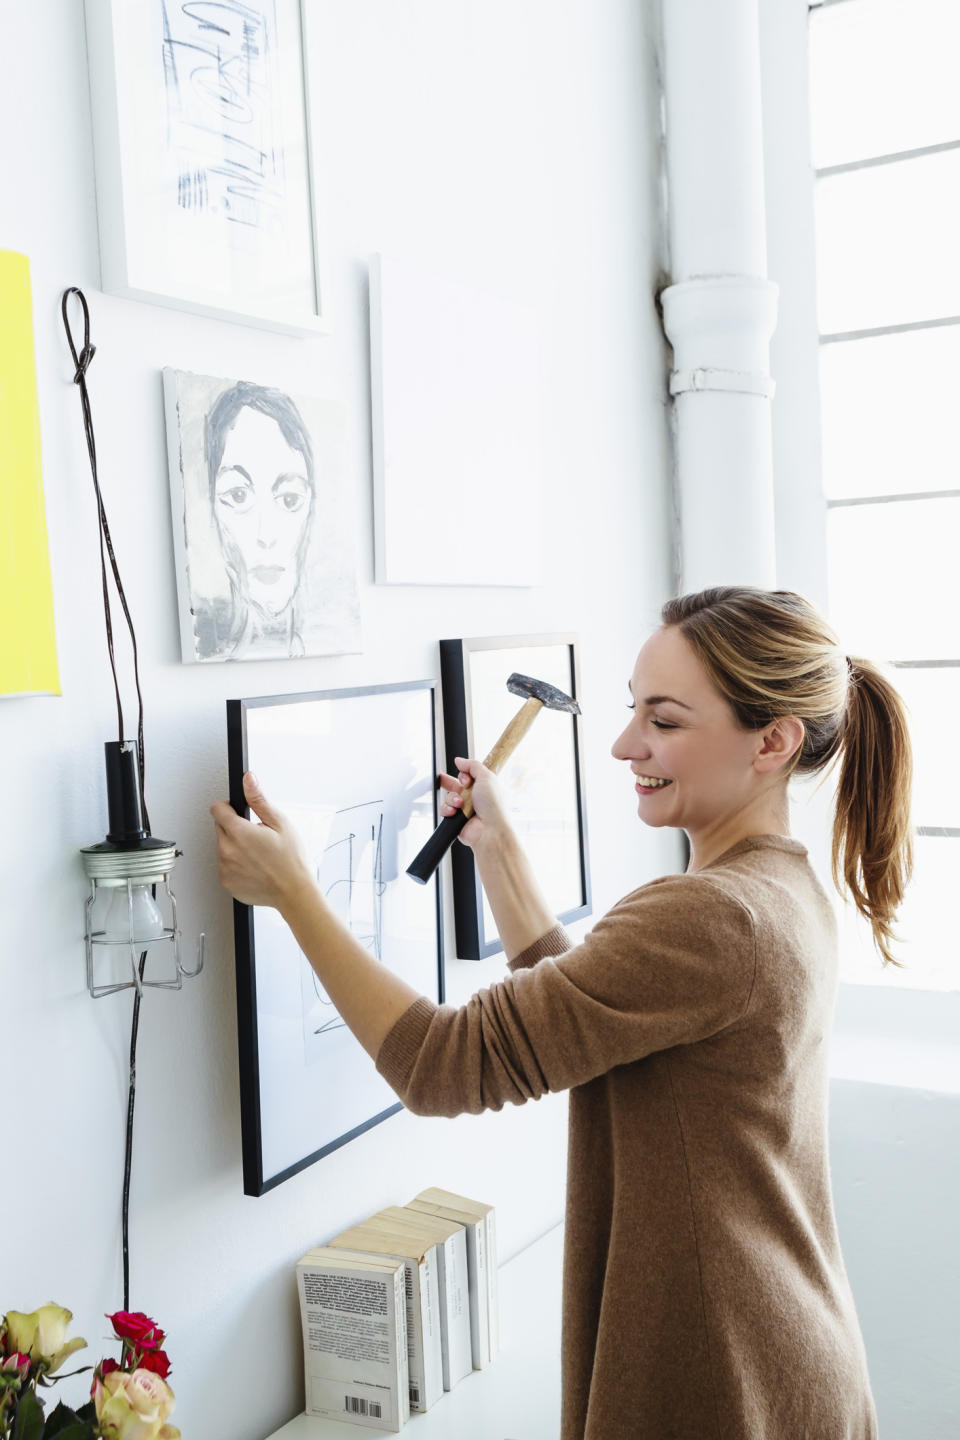 Using toothpaste to help hang a picture is one of the suggested DIY hacks. (Getty Images)